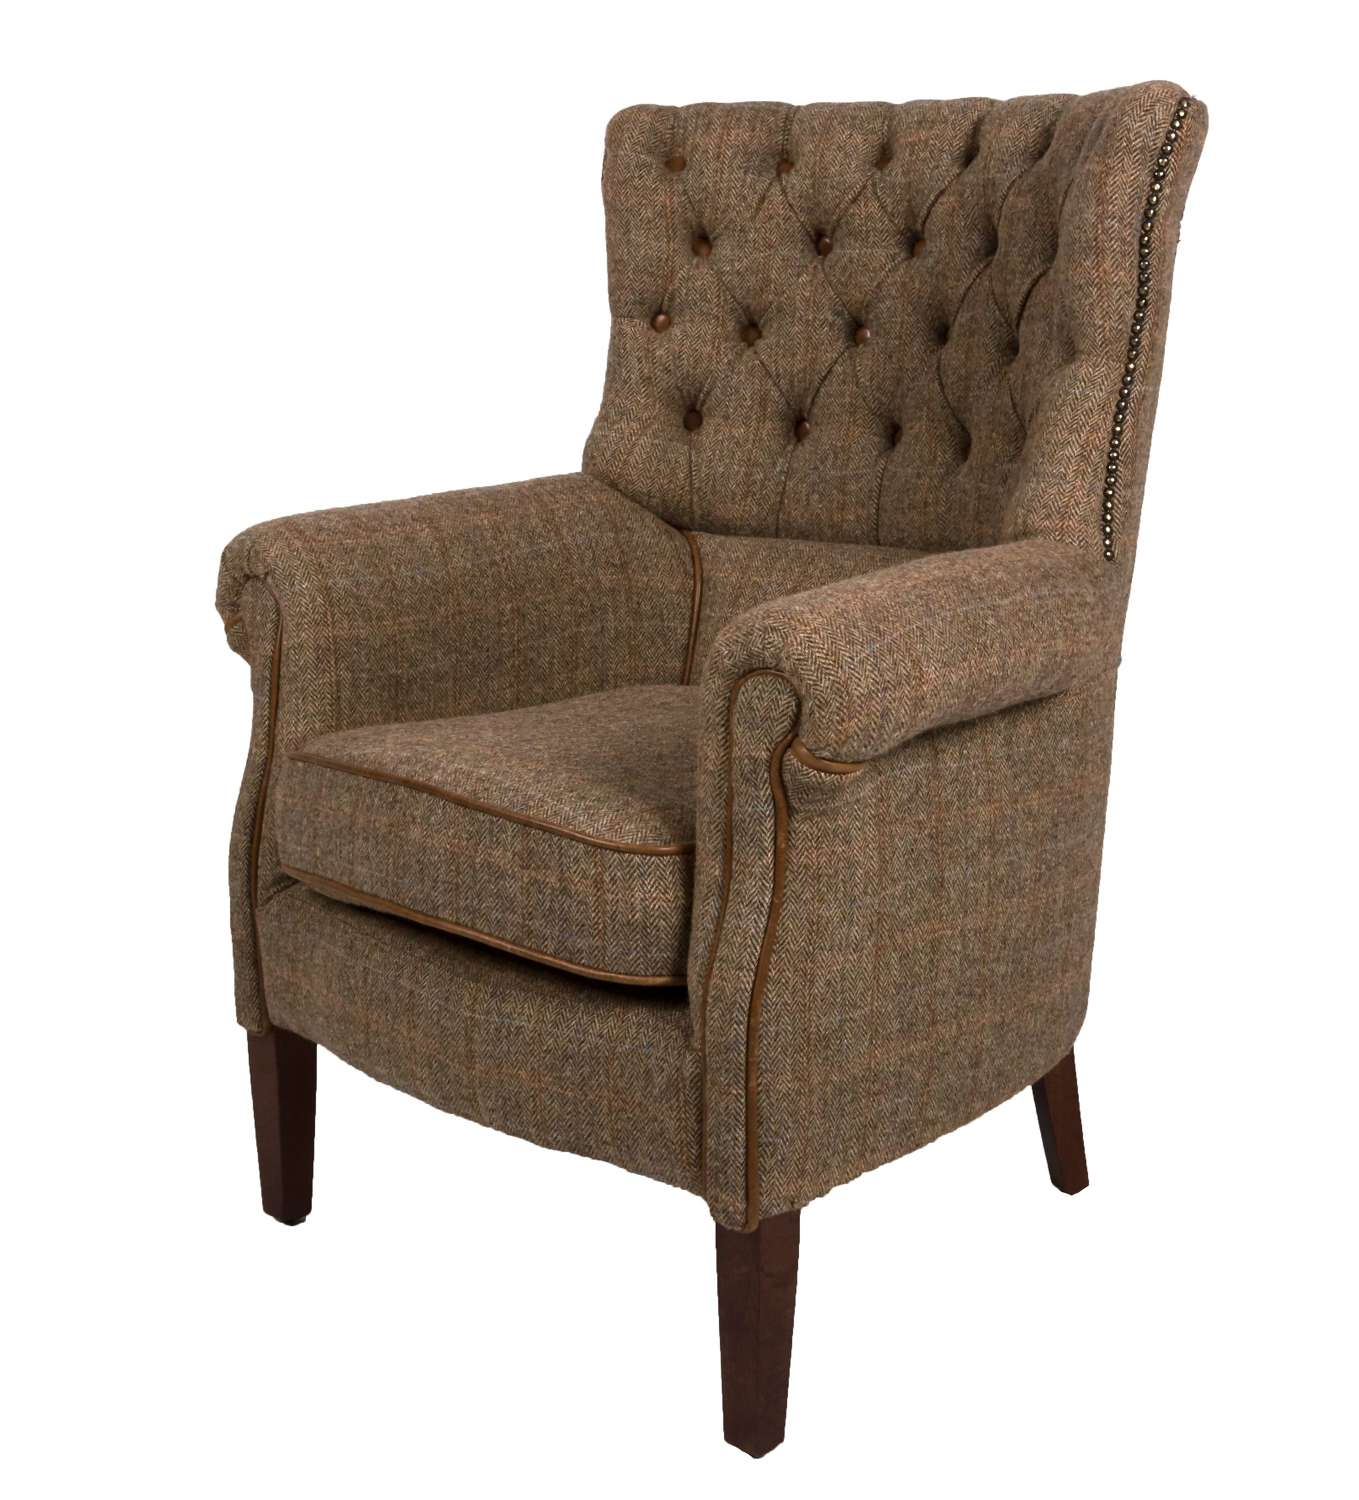 Holker ArmChair in Gamekeeper HarrisTweed and Cerato Leather